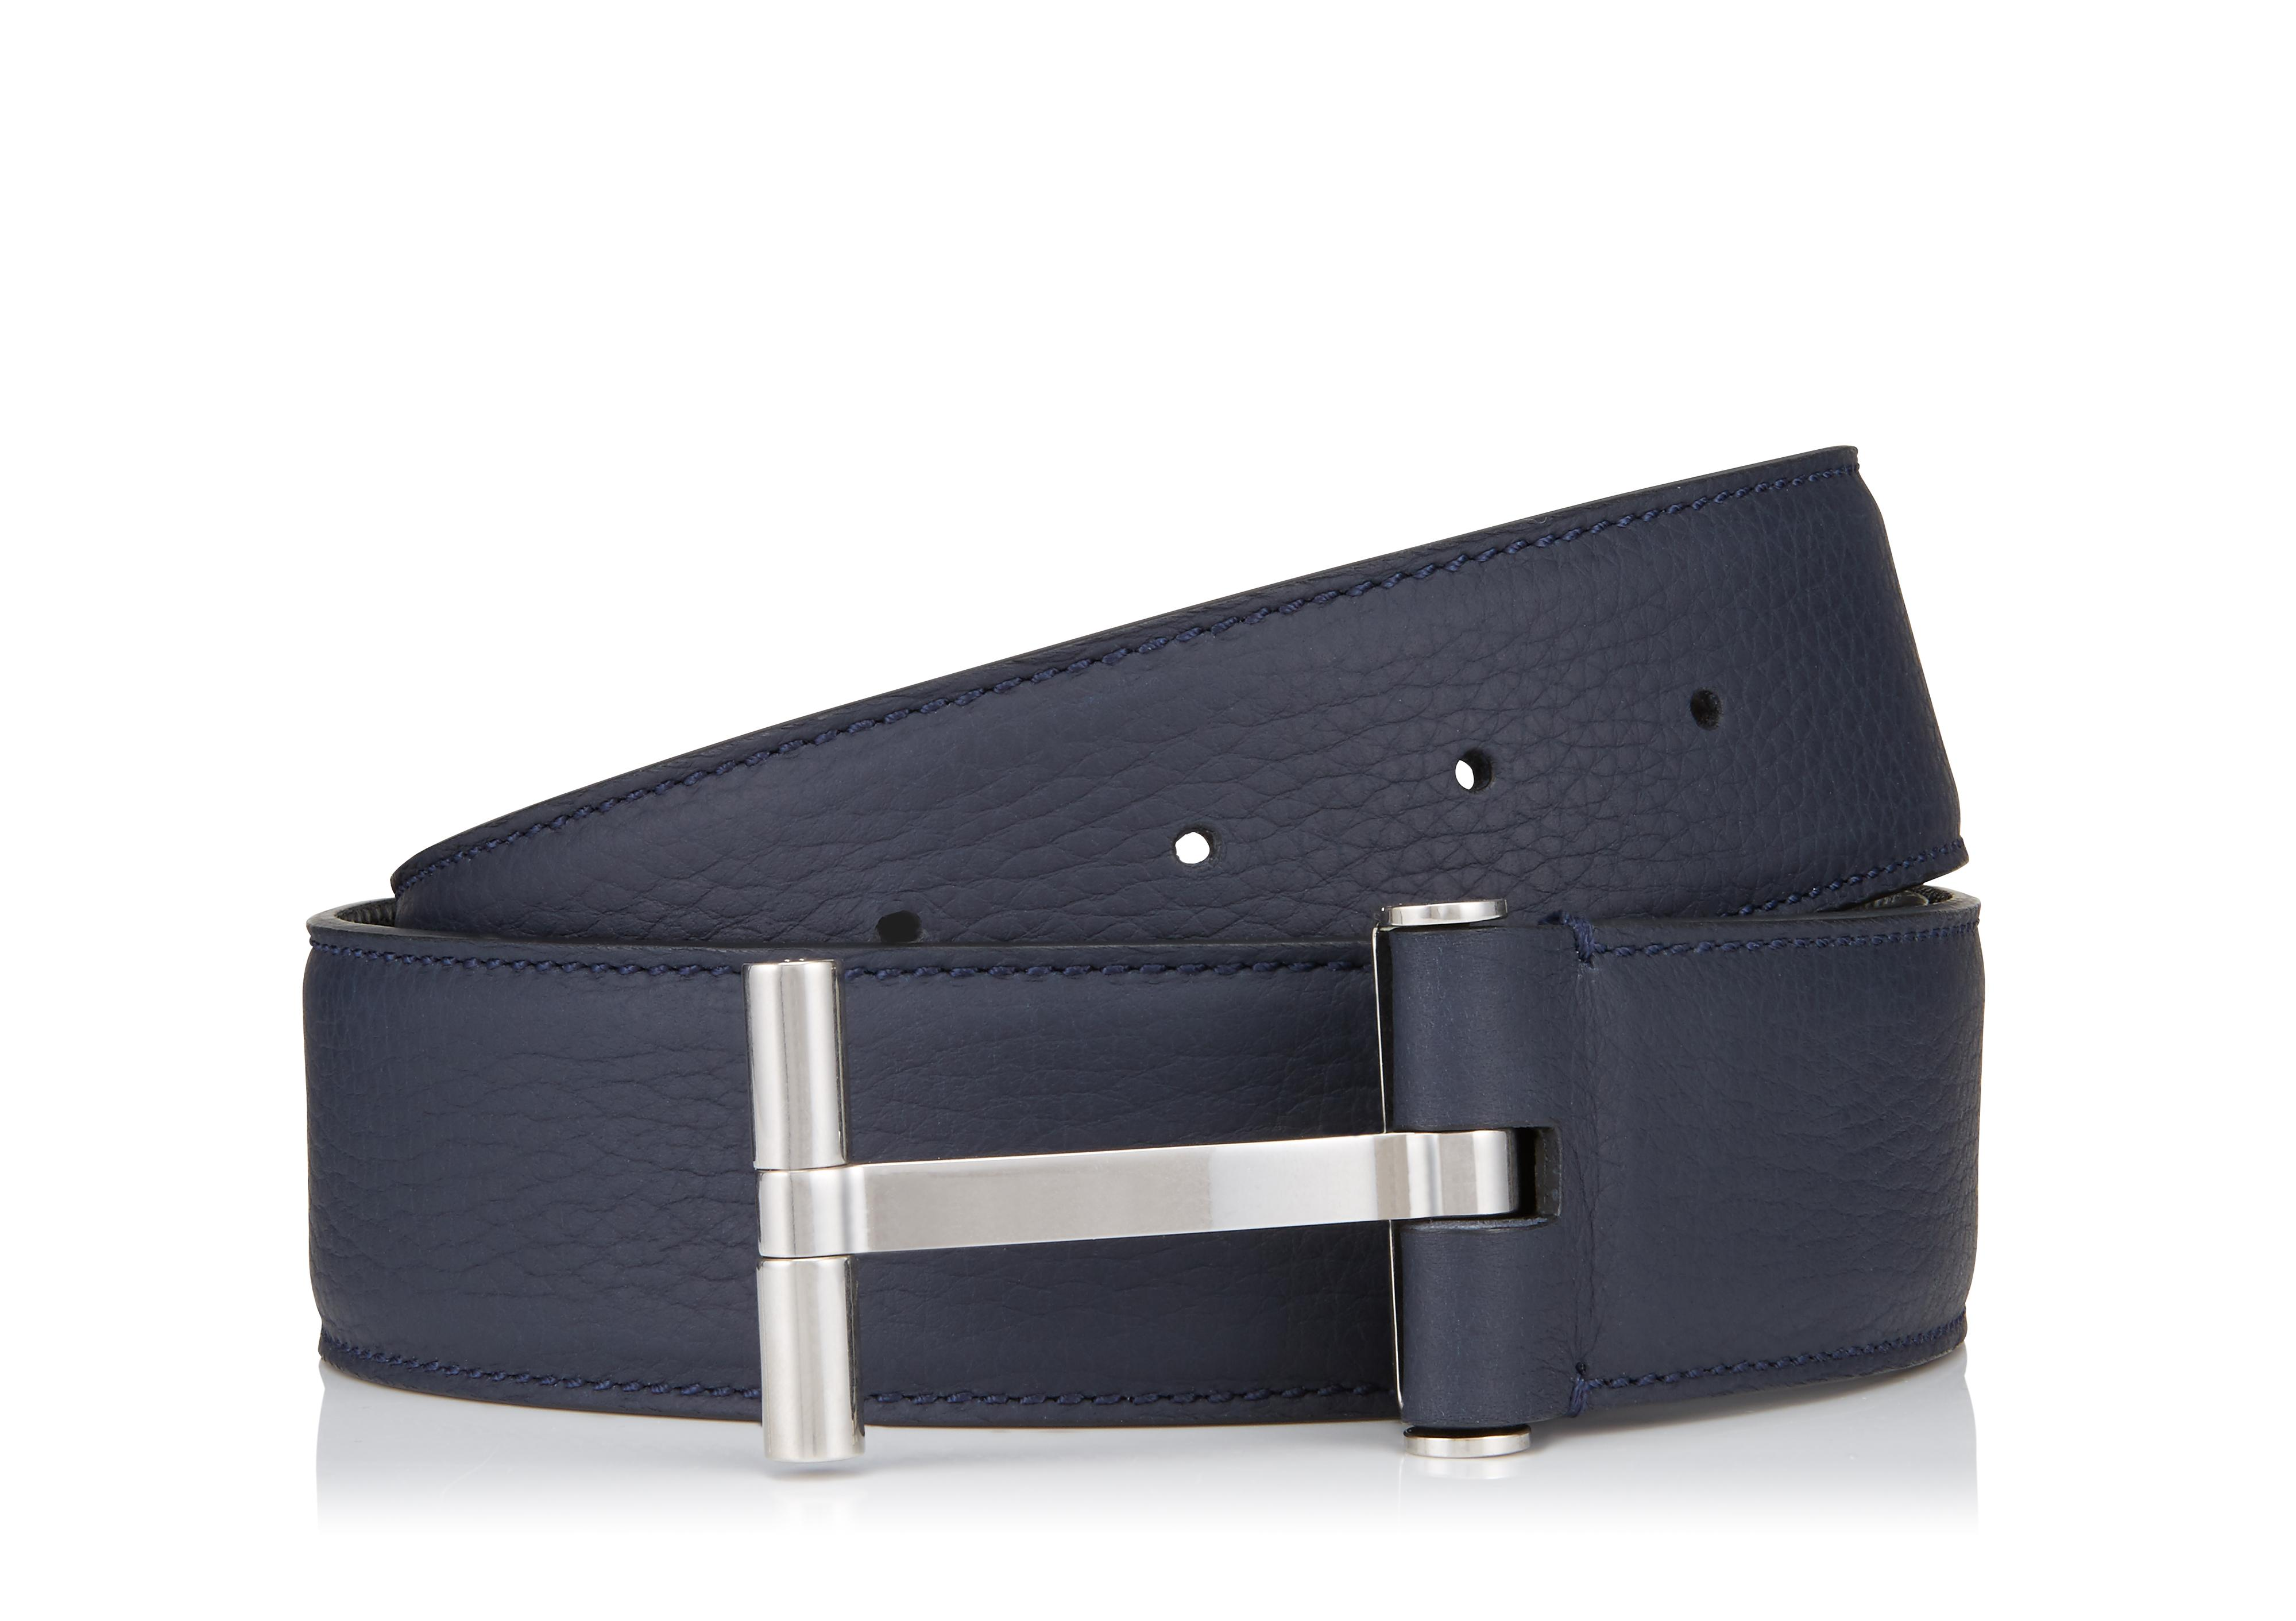 T BUCKLE BELT A thumbnail